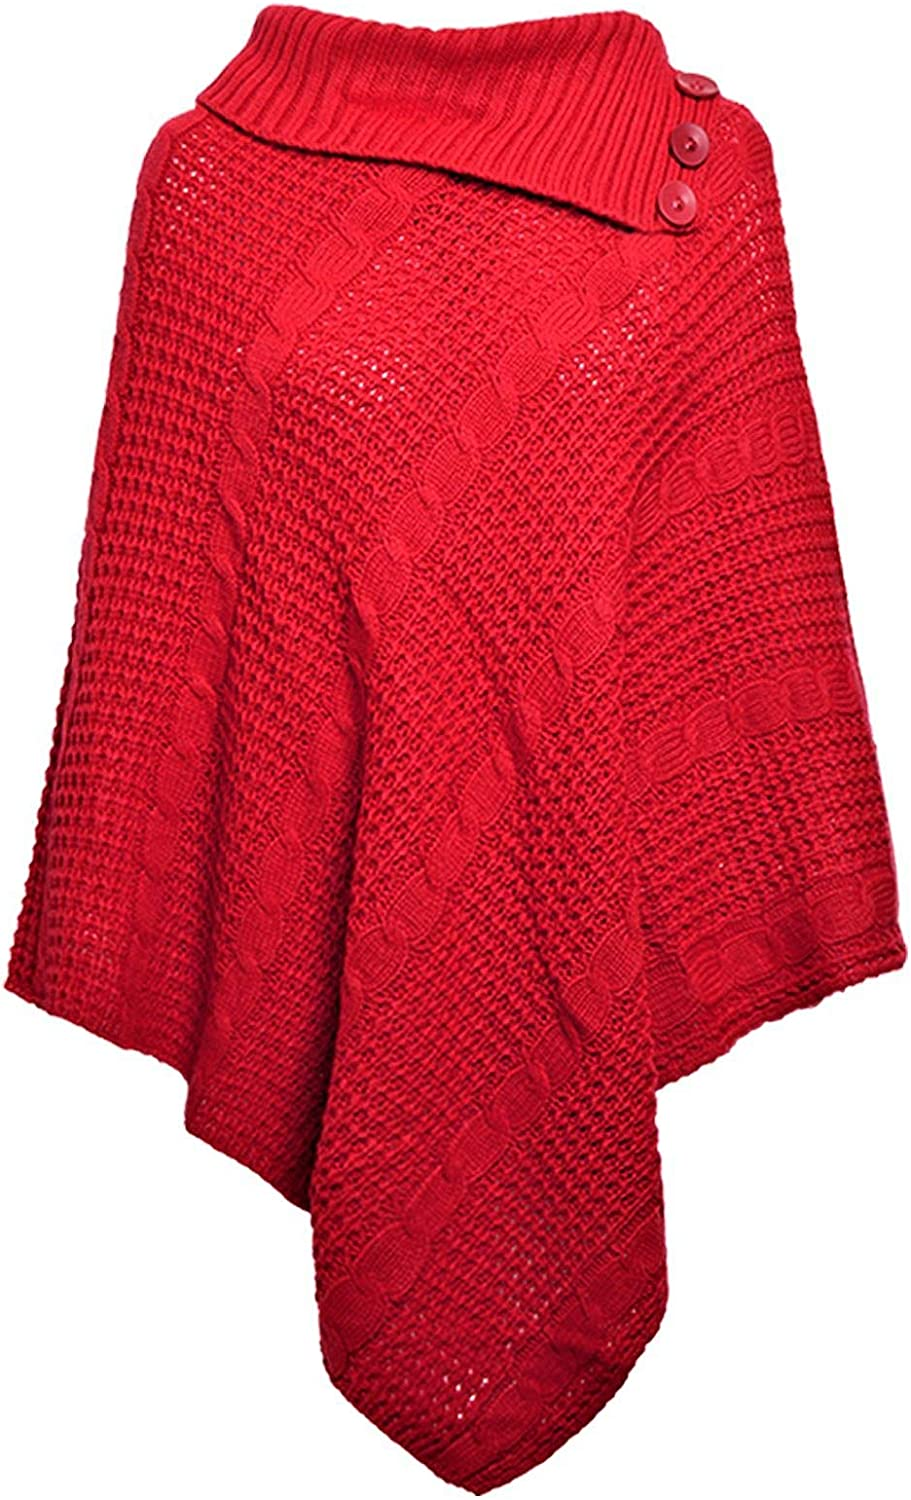 Red Olives/® Womens Ladies Cable Knitted 3 Button Poncho Winter Cape Wrap Shawl Jumper UK 8-14